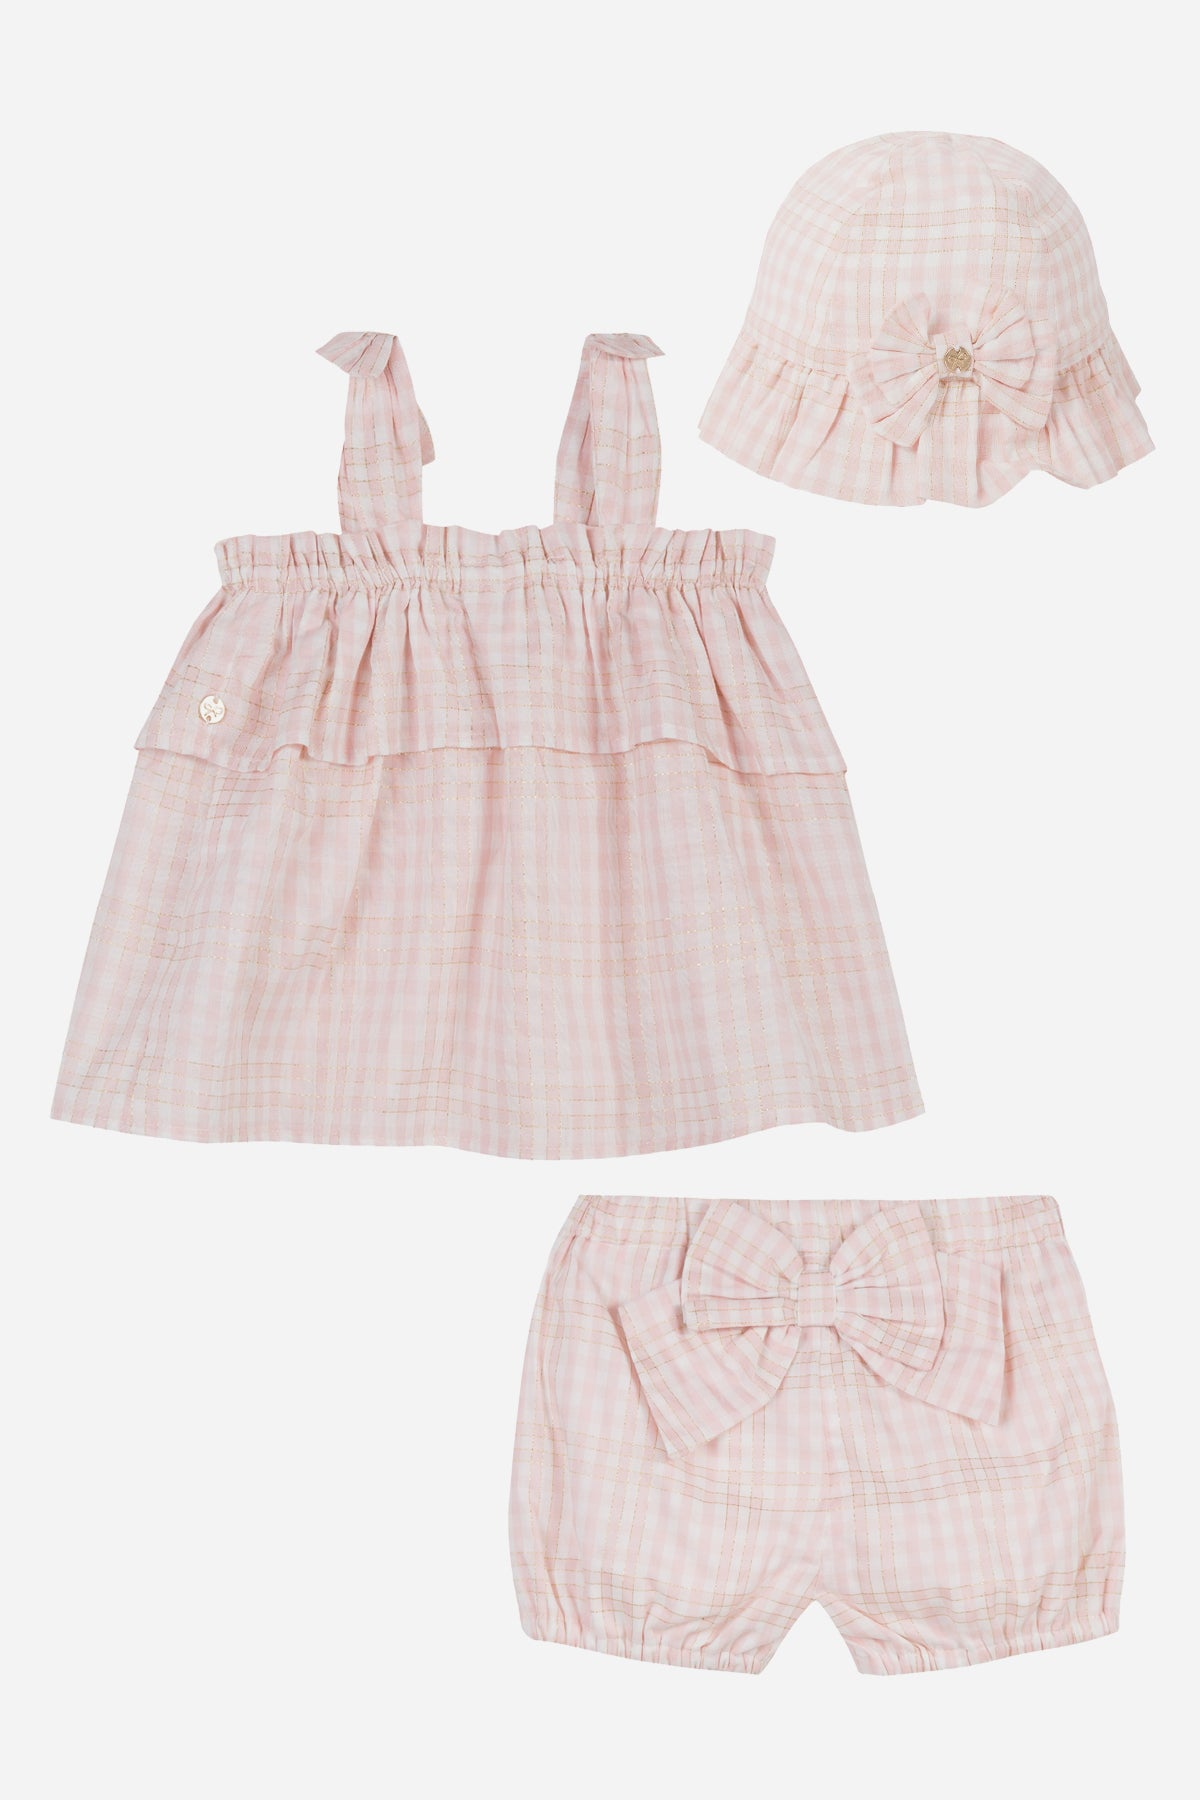 abdeb0463 Lili Gaufrette Baby Girls 3-Piece Set - Mini Ruby